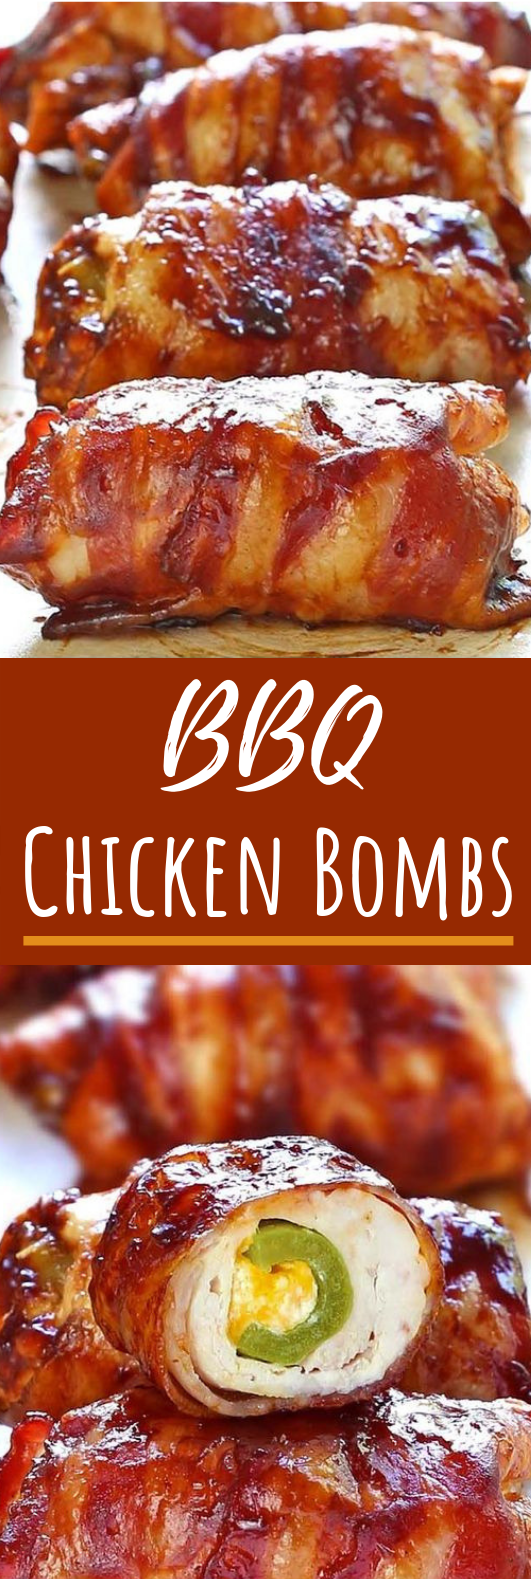 Bacon BBQ Chicken Bombs #easy #dinner